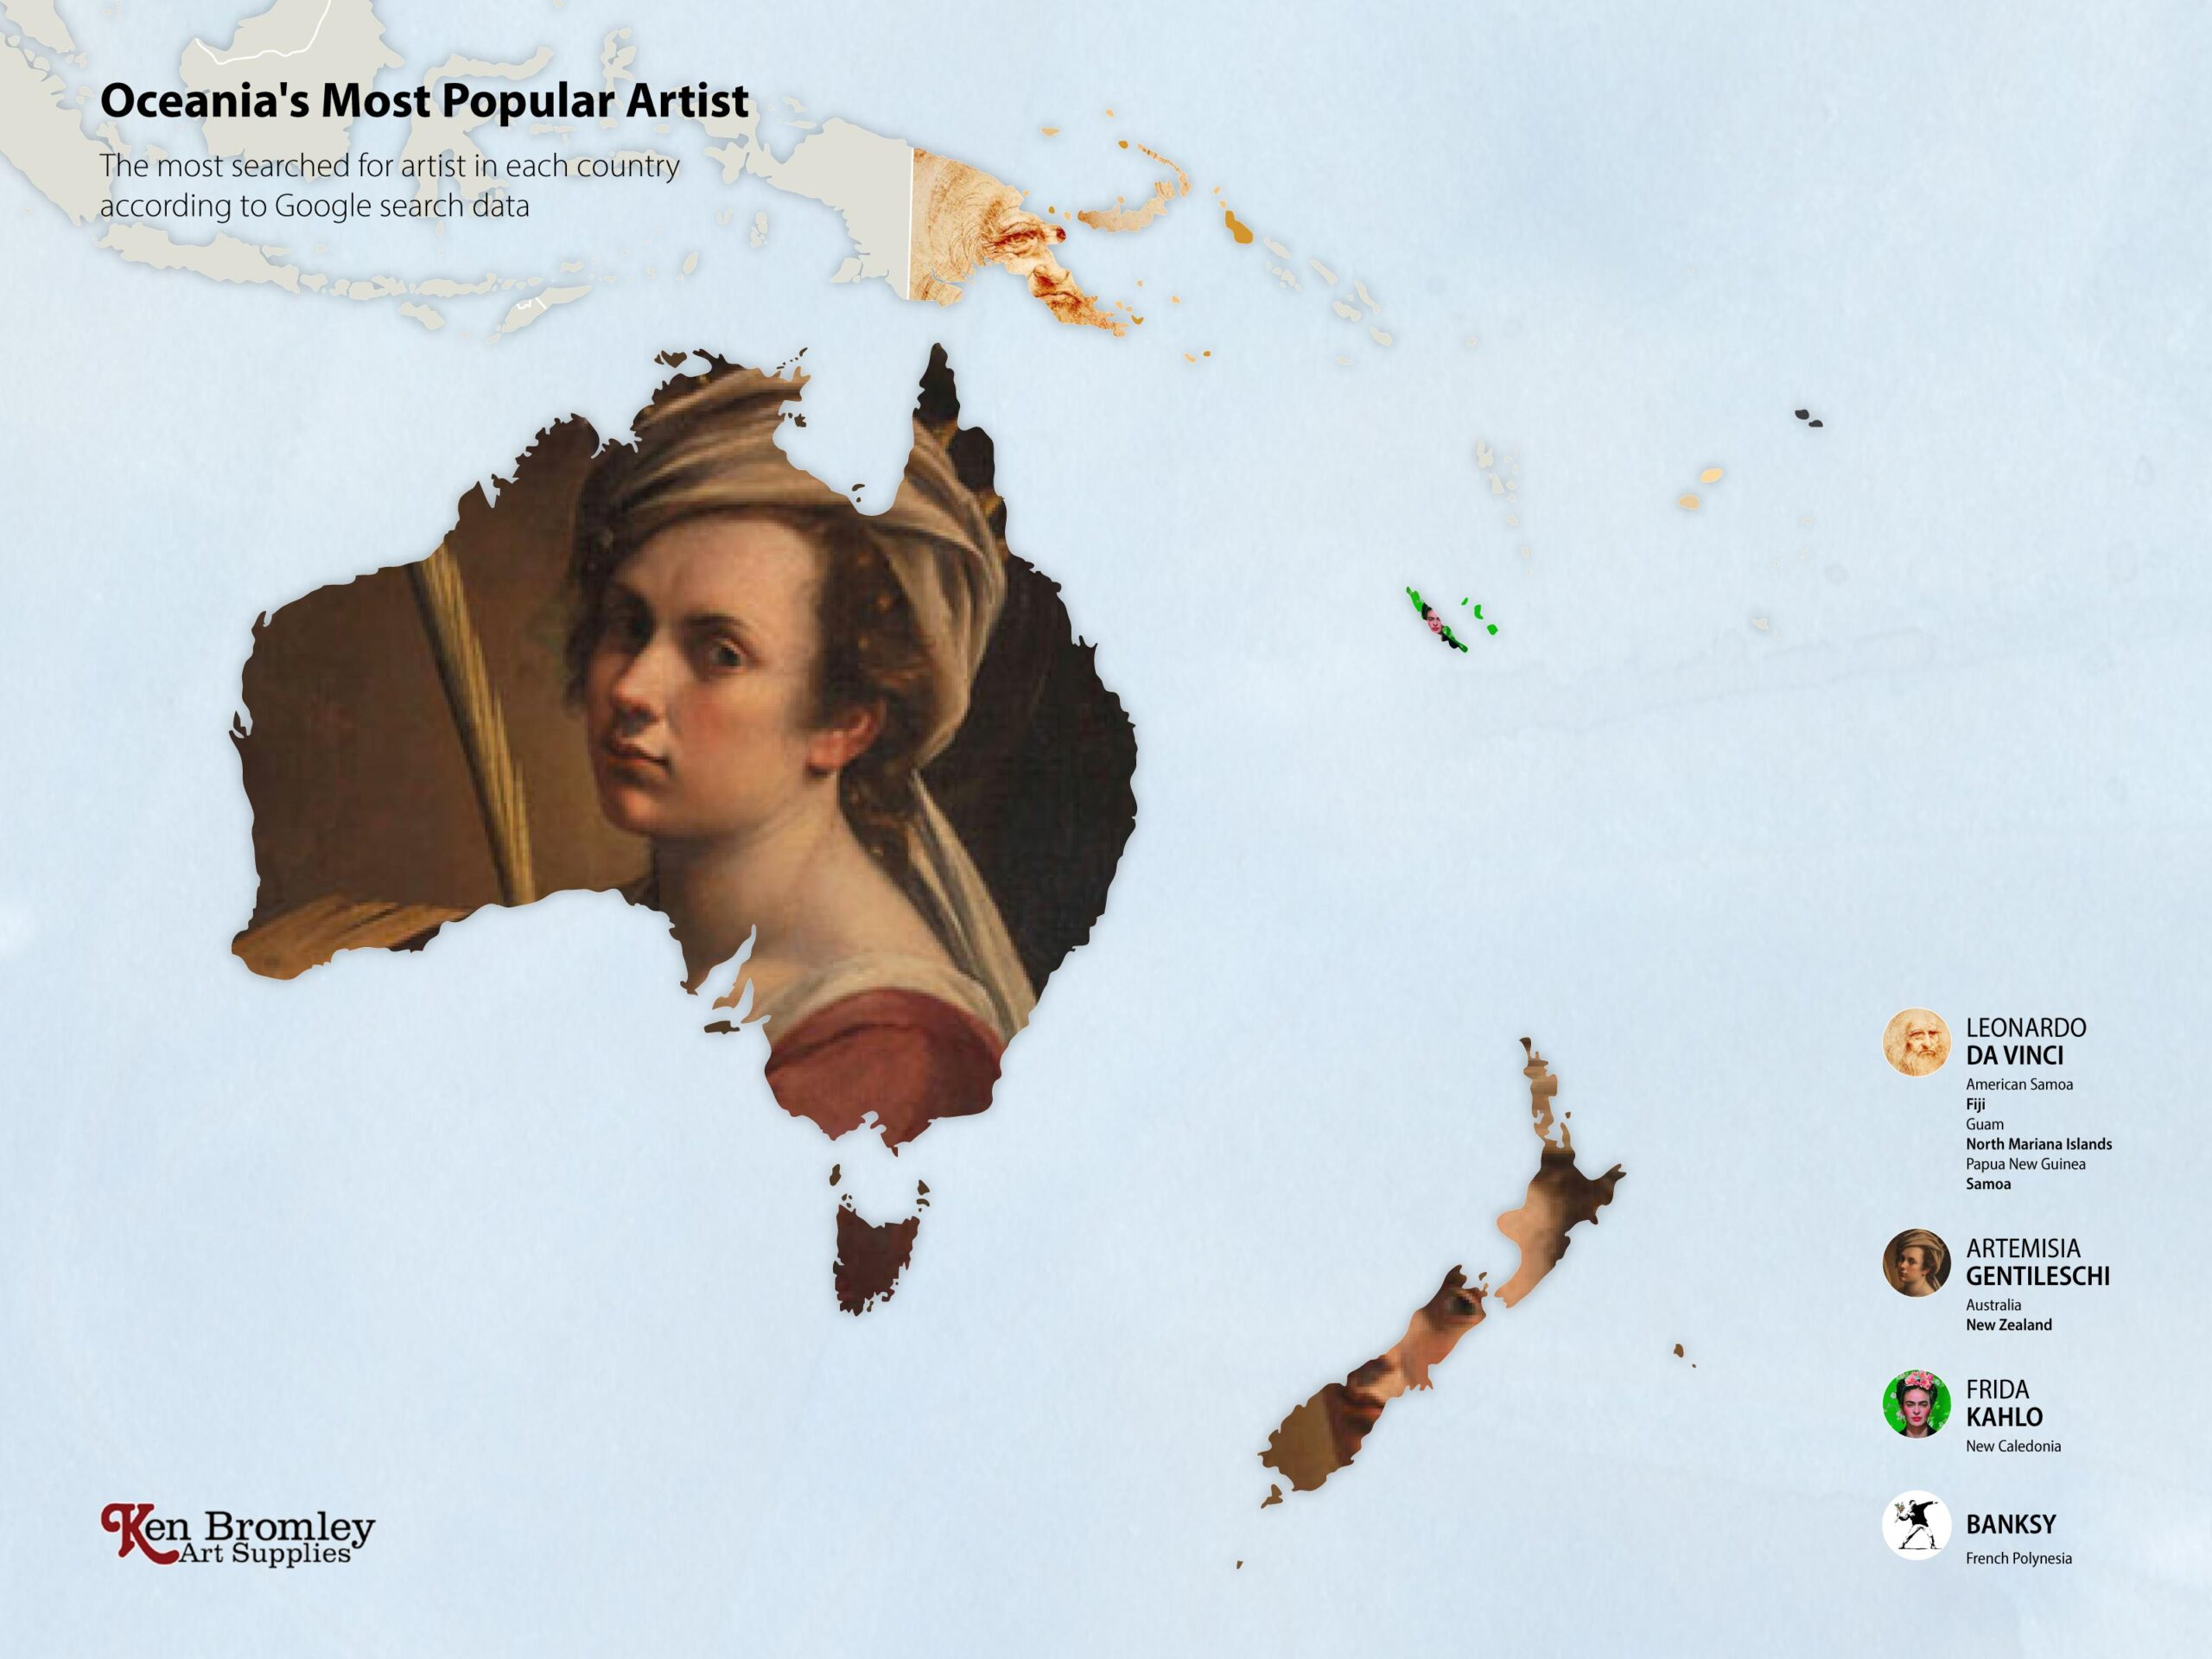 The most popular artists in Oceania